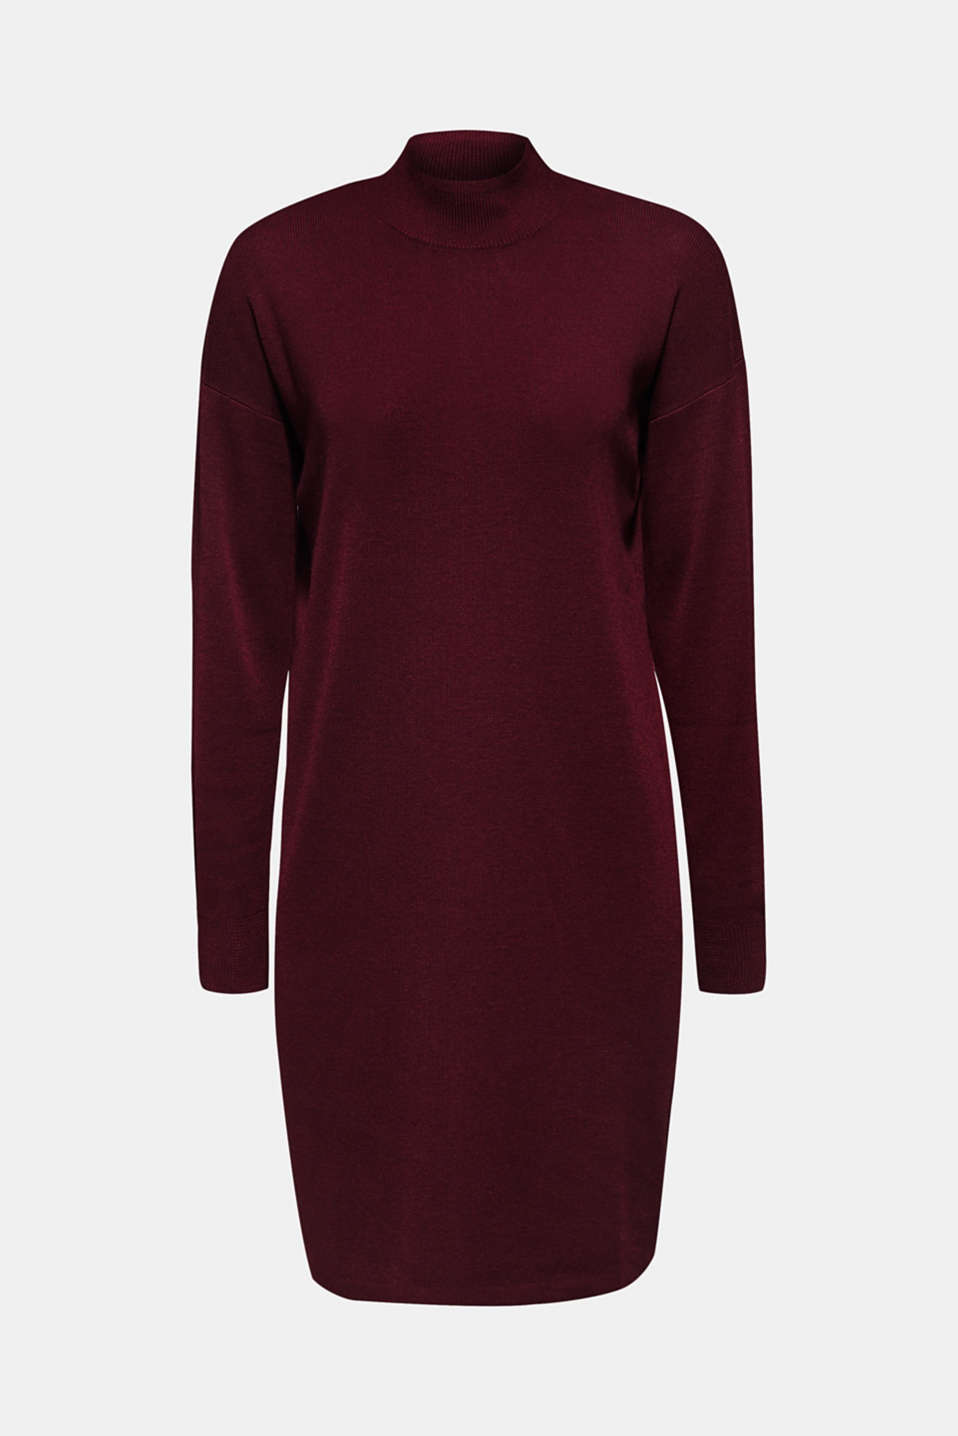 Dress made of a fine knit, recycled, BORDEAUX RED, detail image number 6